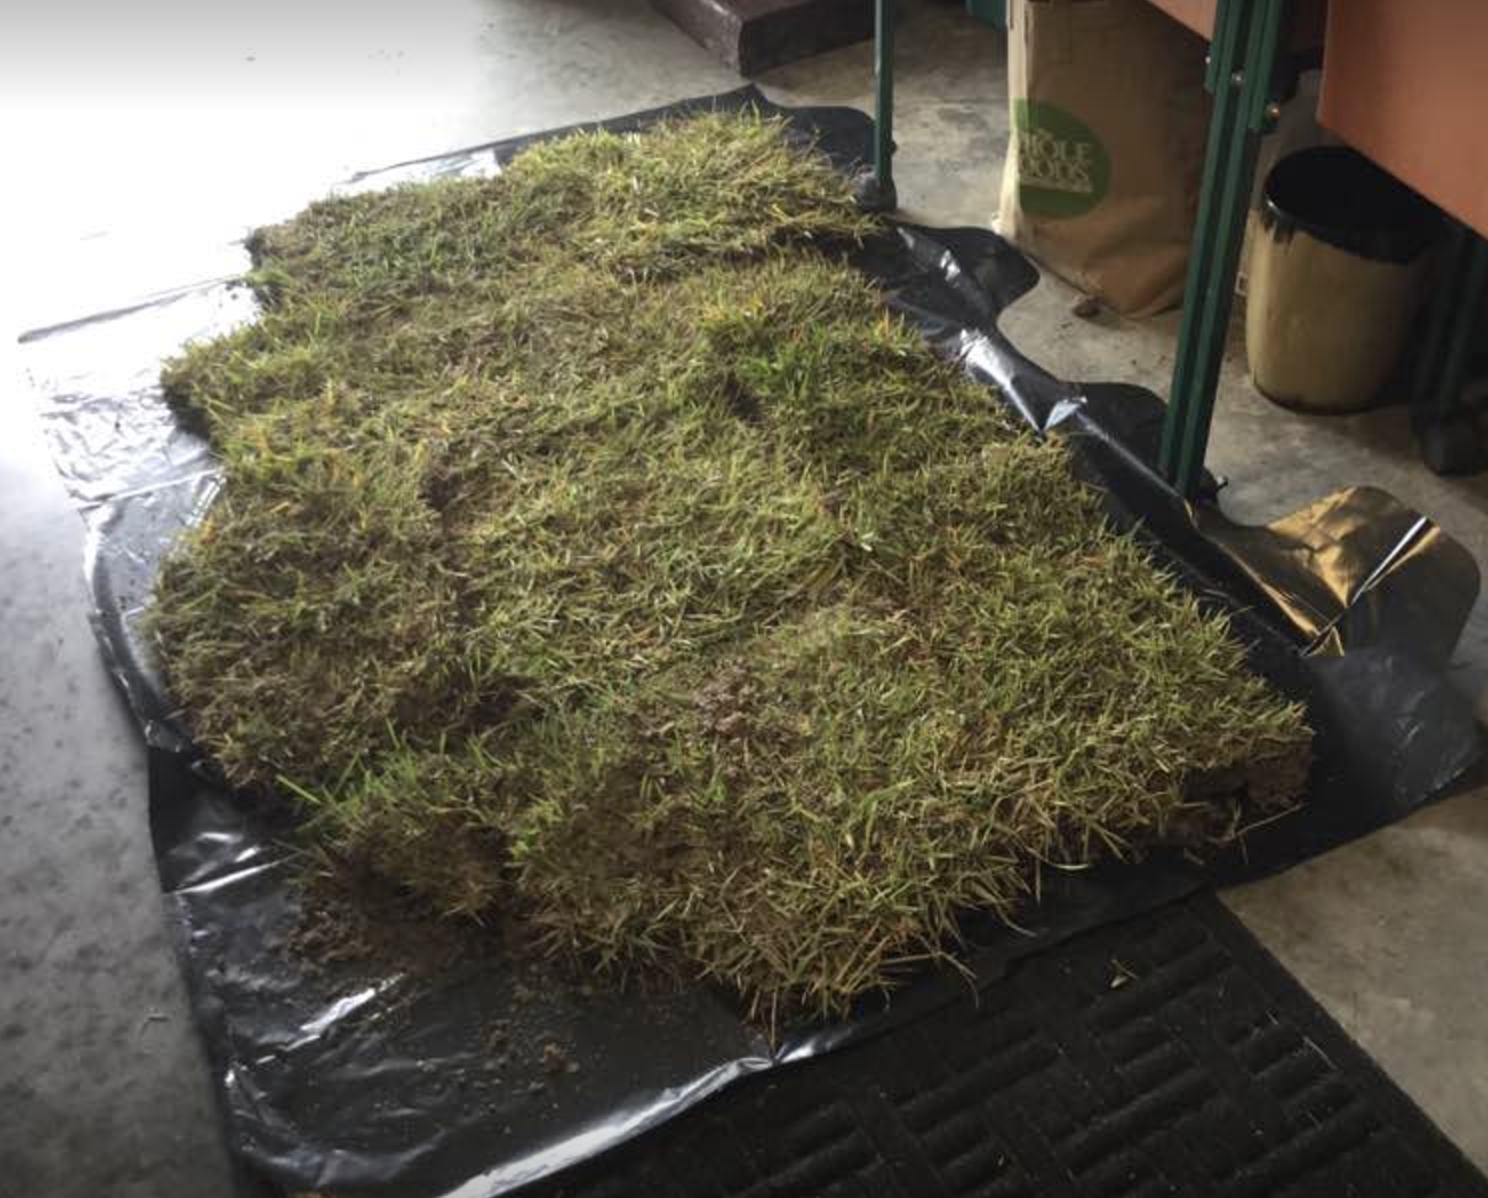 picture of sod I put down in my garage so my dog could go potty without having to go out into the storm.